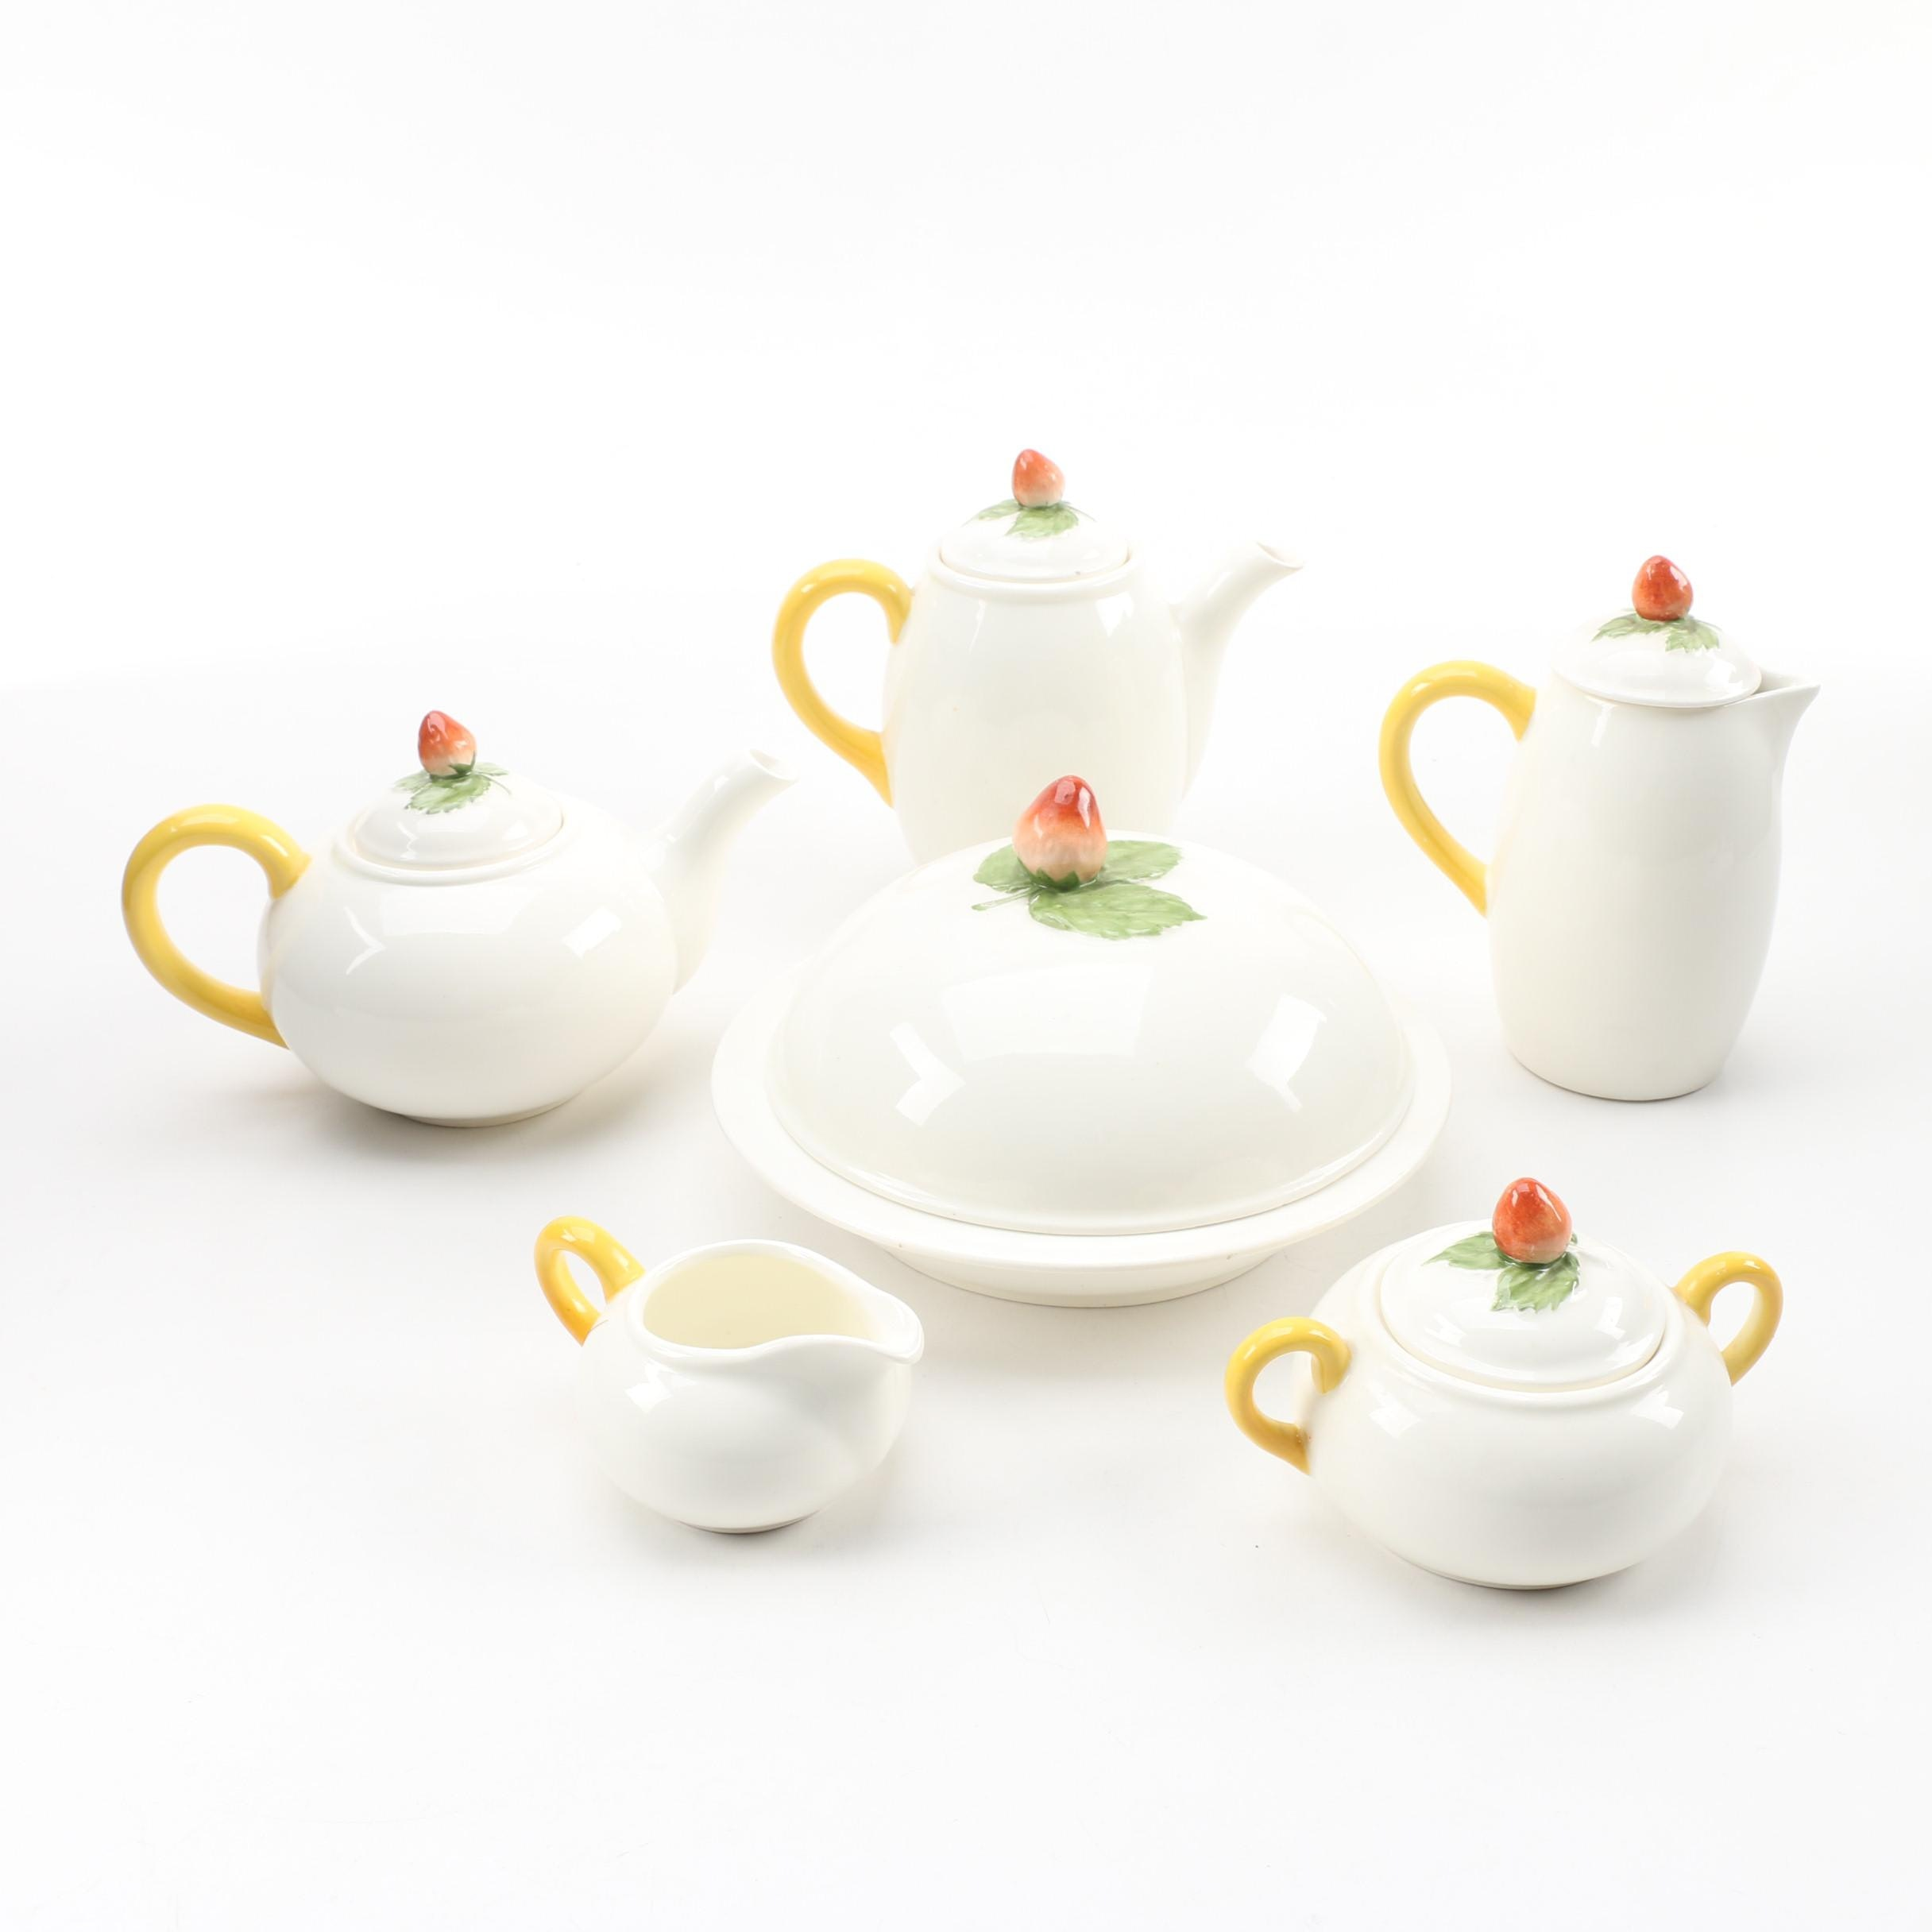 Bavarian Ceramic Tea Serving Set